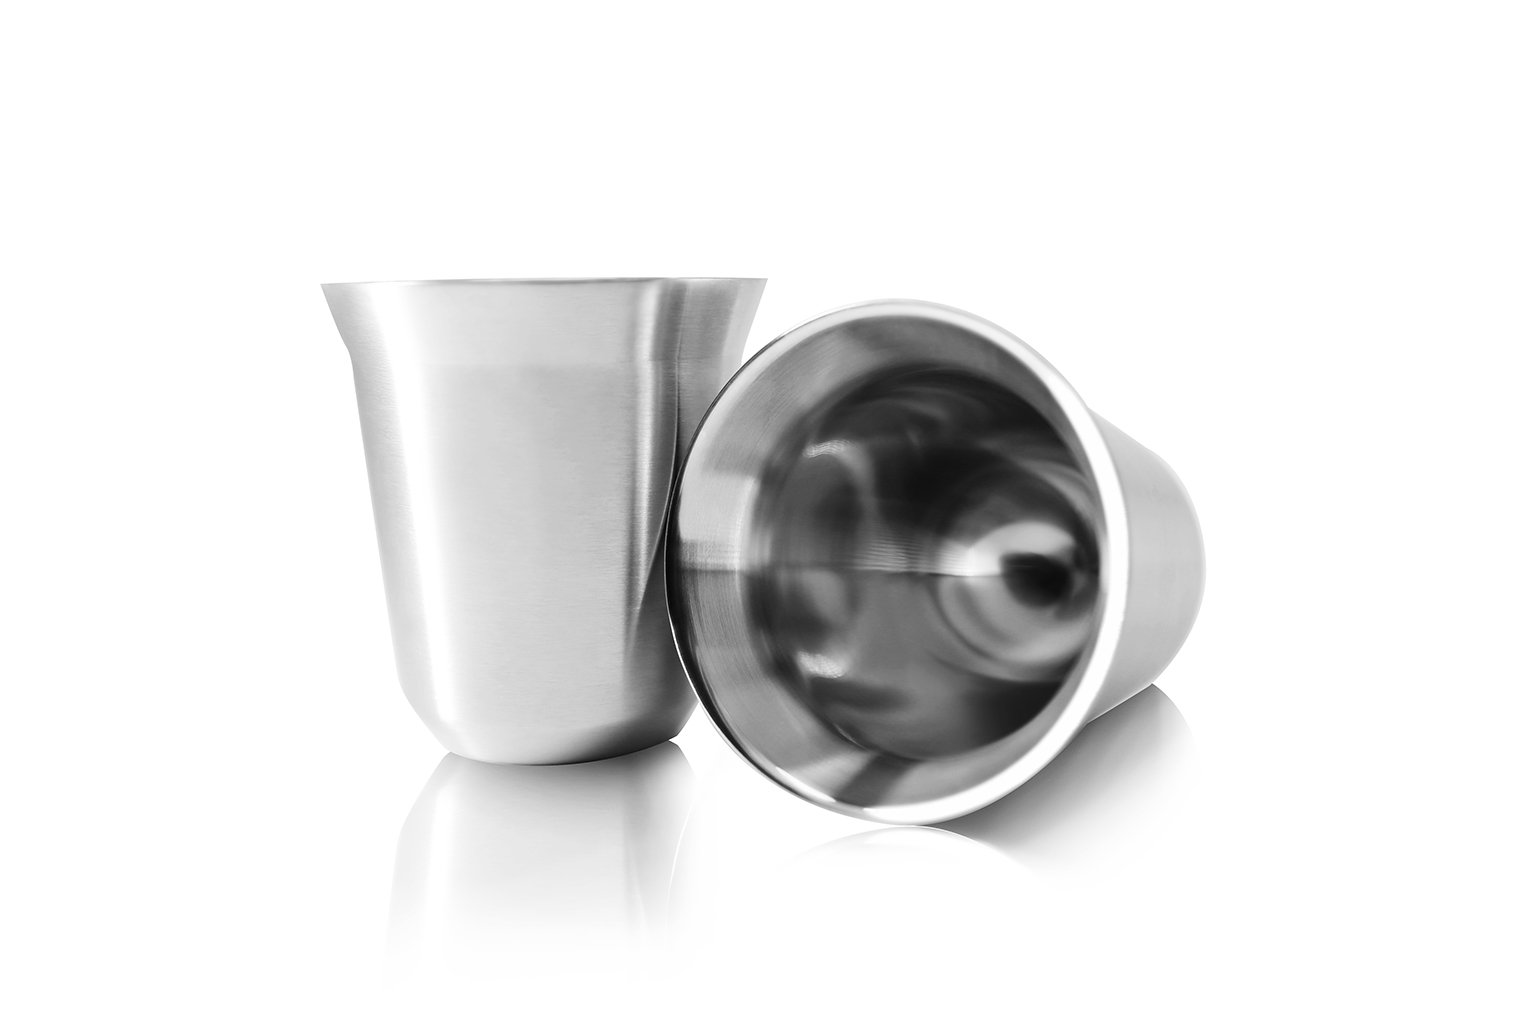 80mL (2.7 Ounce) Stainless Steel Espresso Cups Double Wall Vacuum Insulated - Set Of 2 Demitasse Cups By Tombert